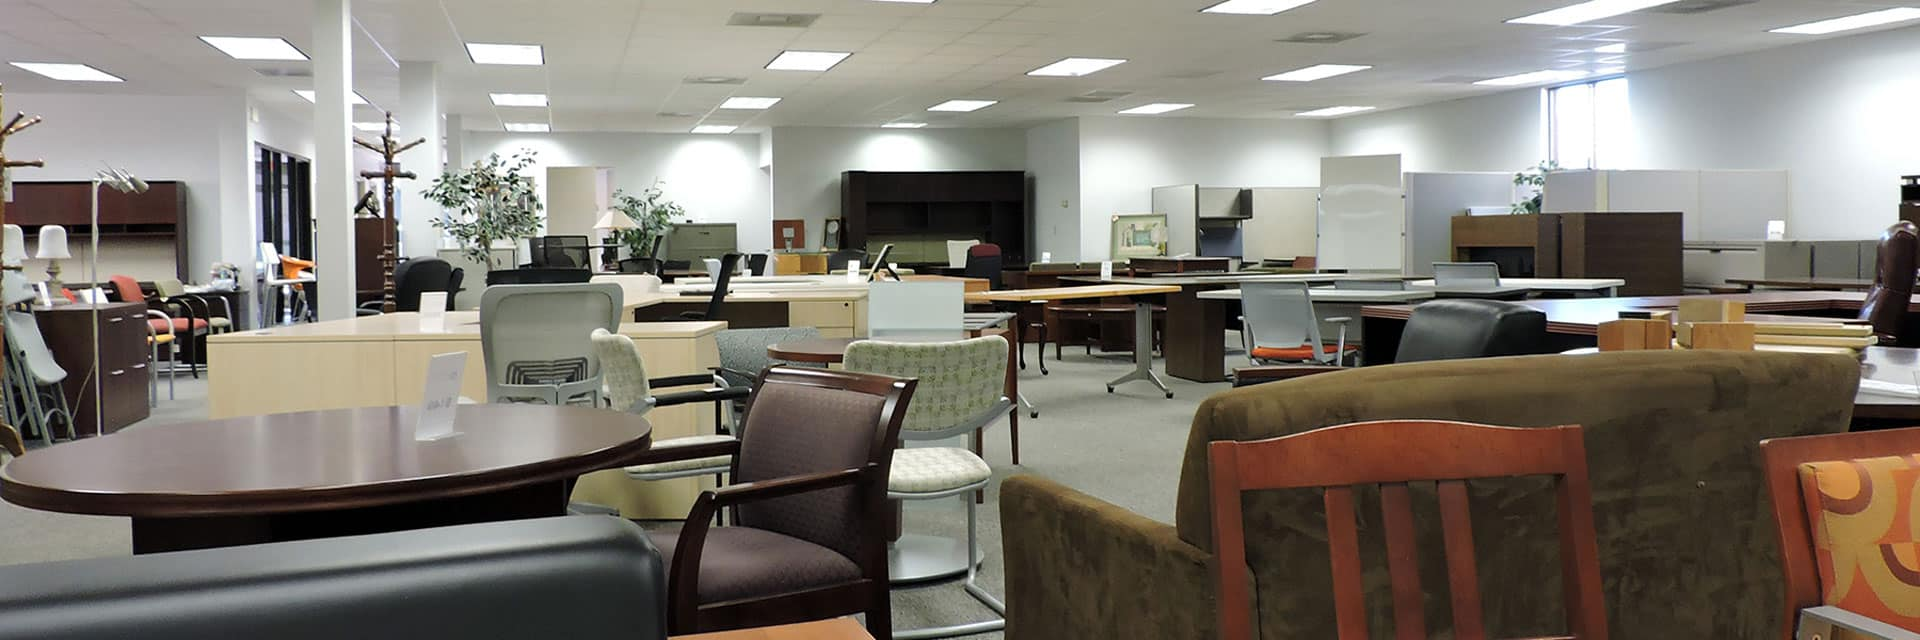 Used office furniture showroom in Richmond VA